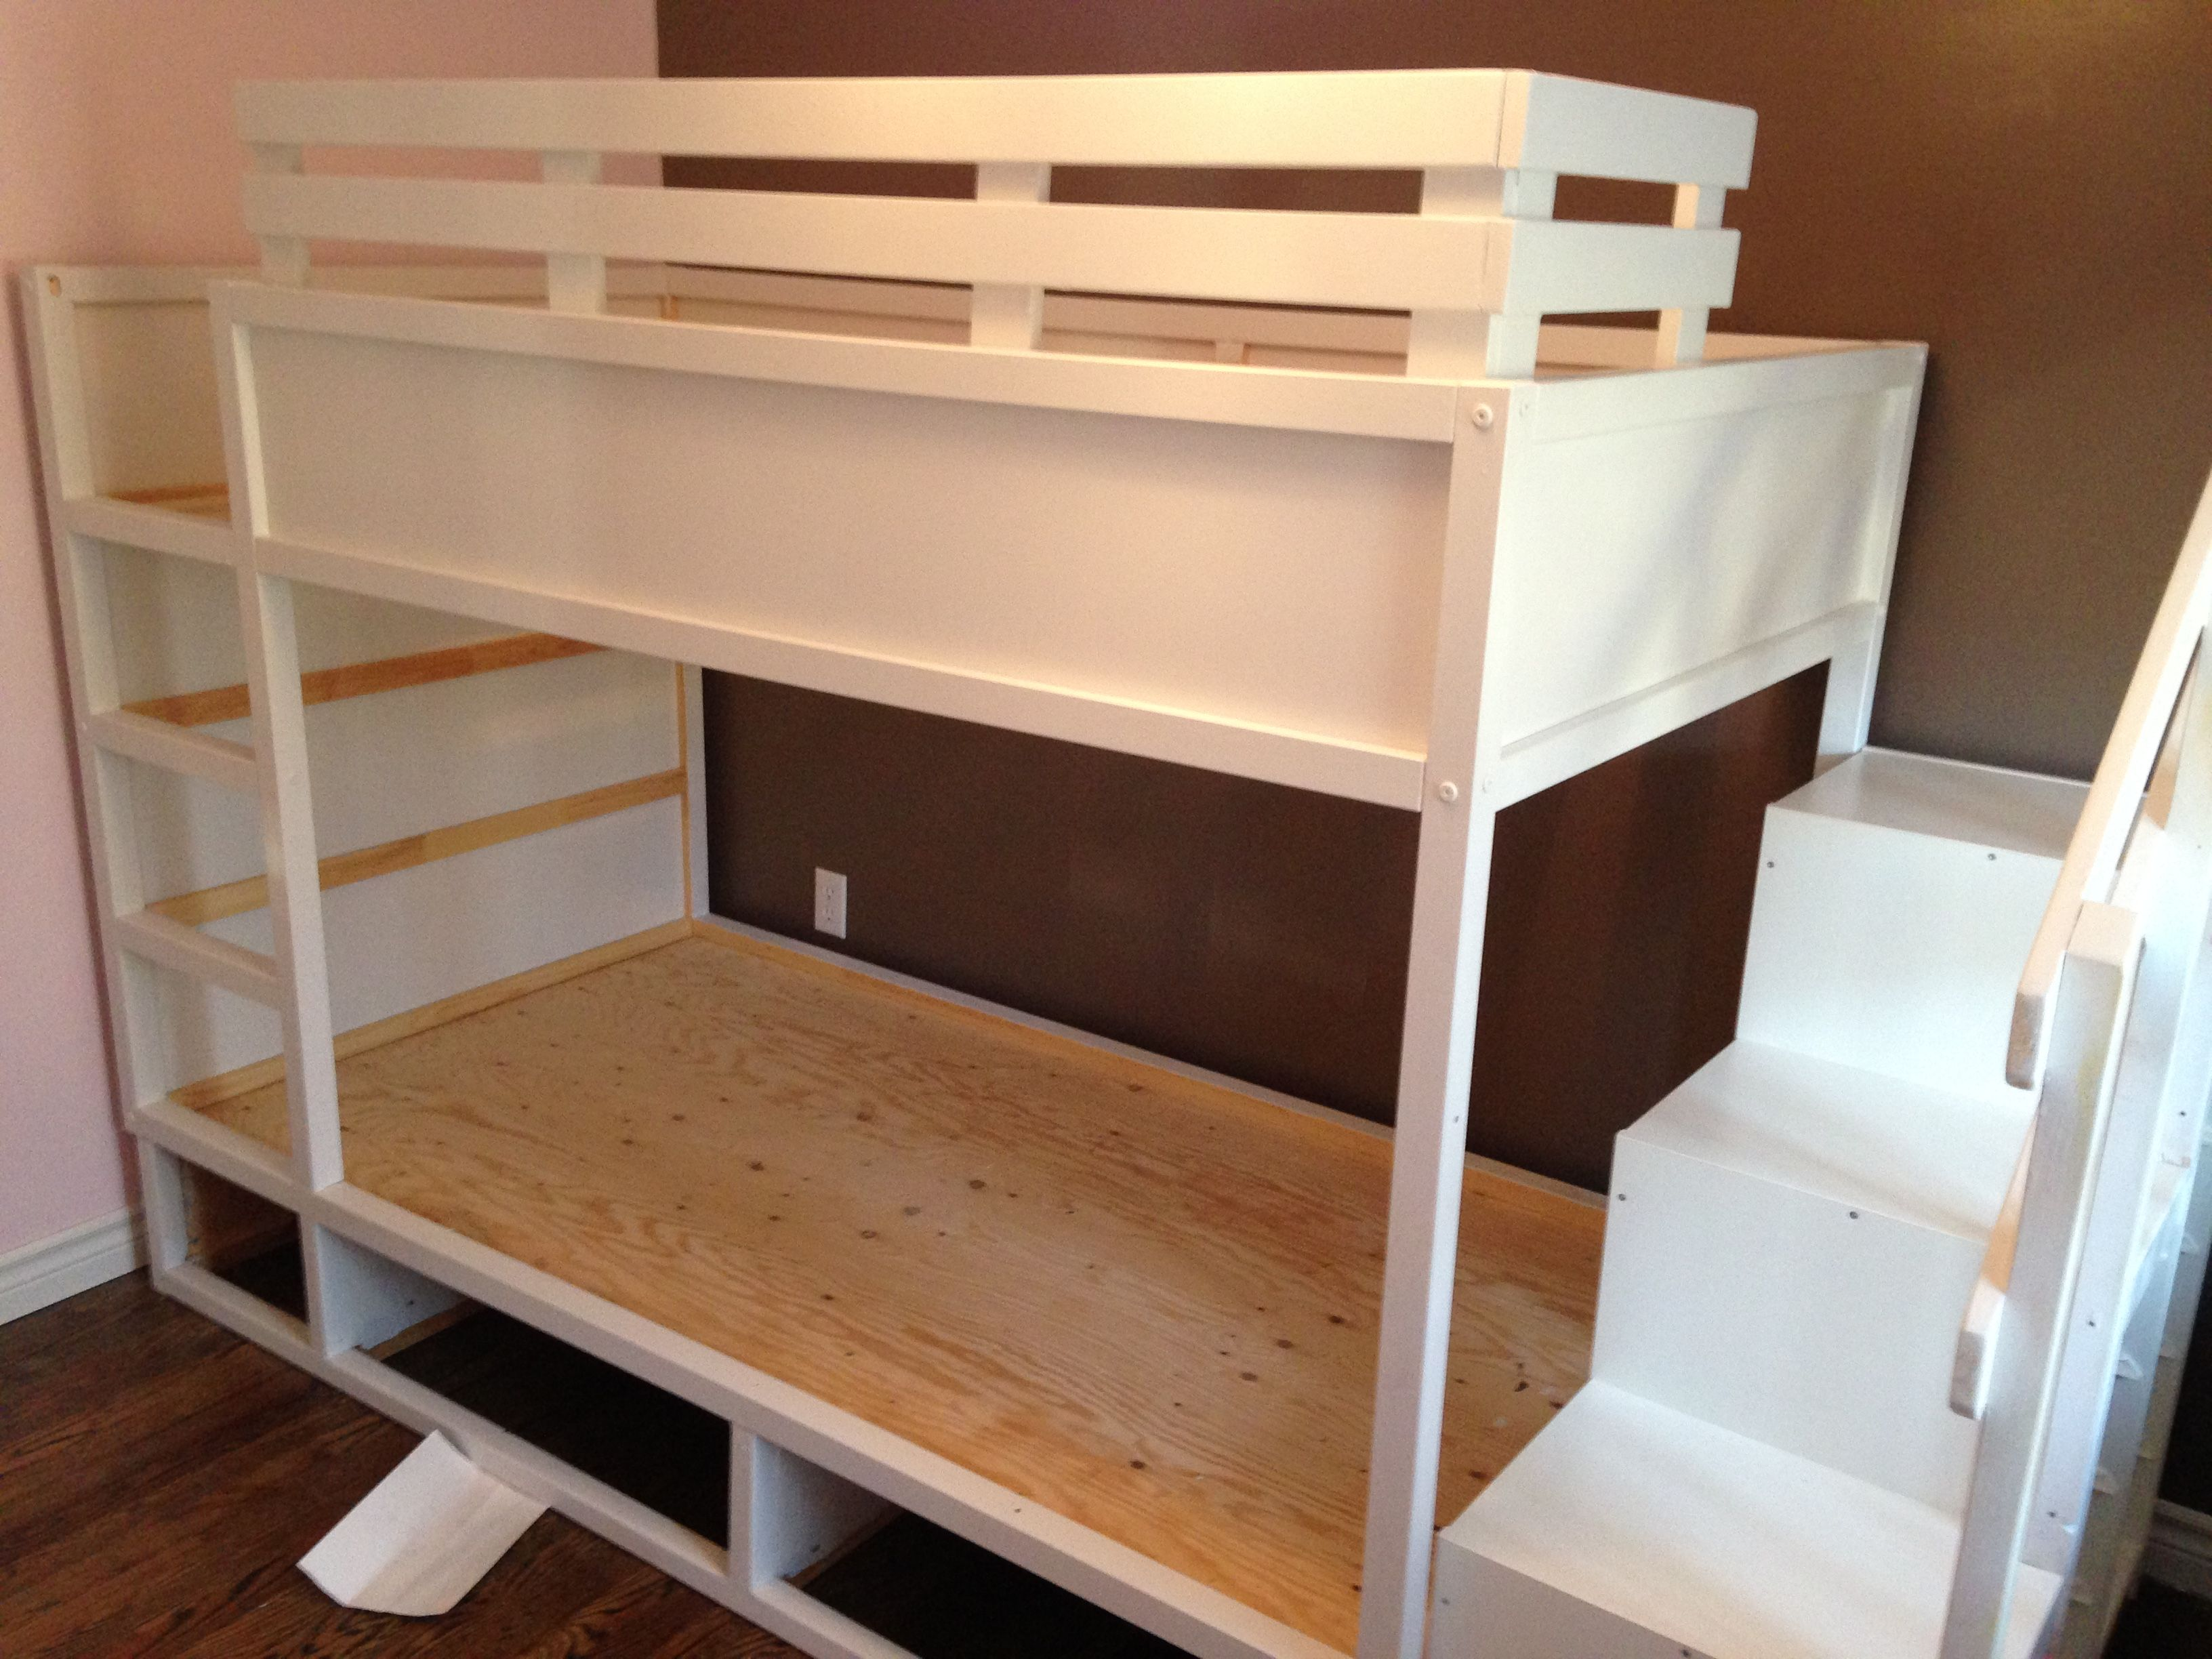 Bunk beds for kids ikea - Ikea Kura Lifted And Made Into A Bunk Bed Plus Room For Under Bed